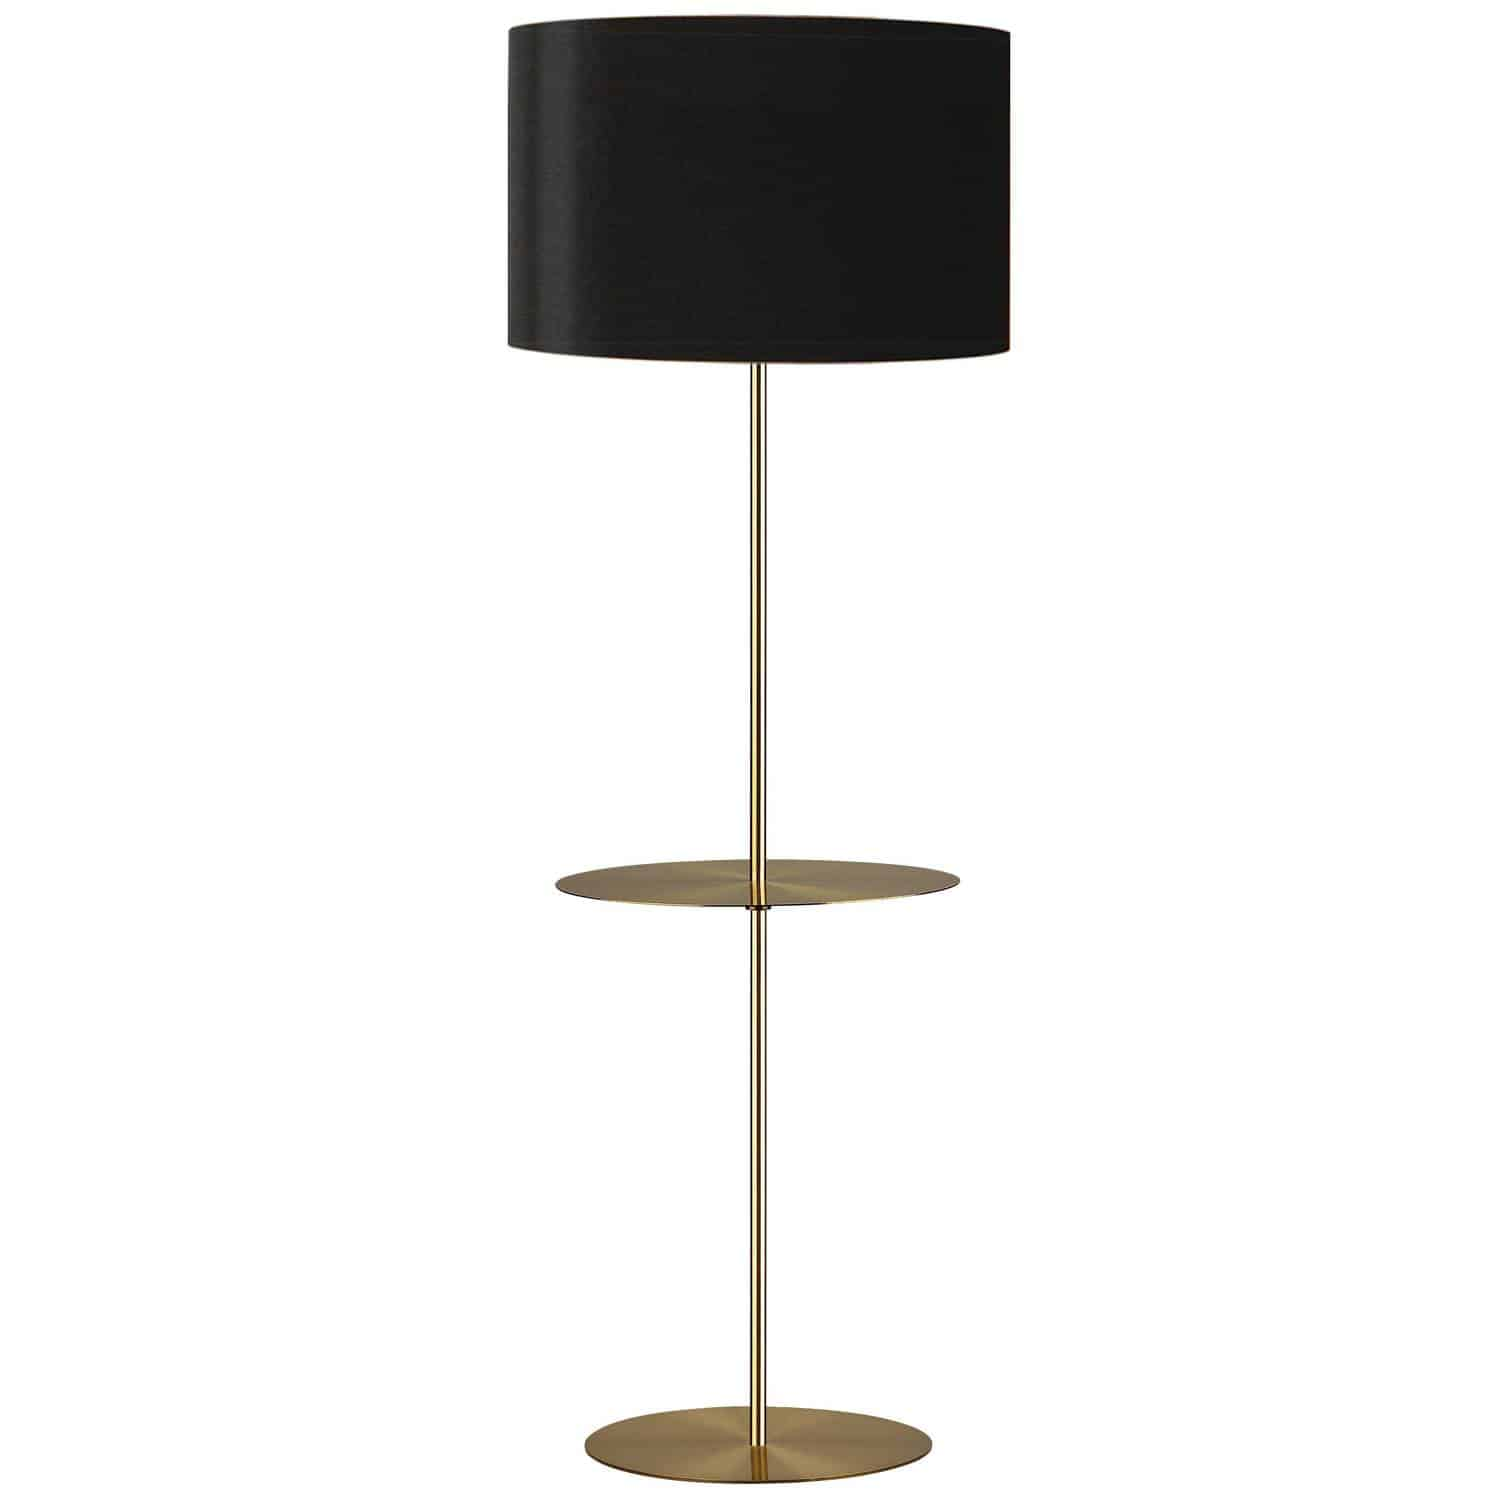 1 Light Incan Rnd. Base with Rnd. Shelf, Aged Brass with Black Shade